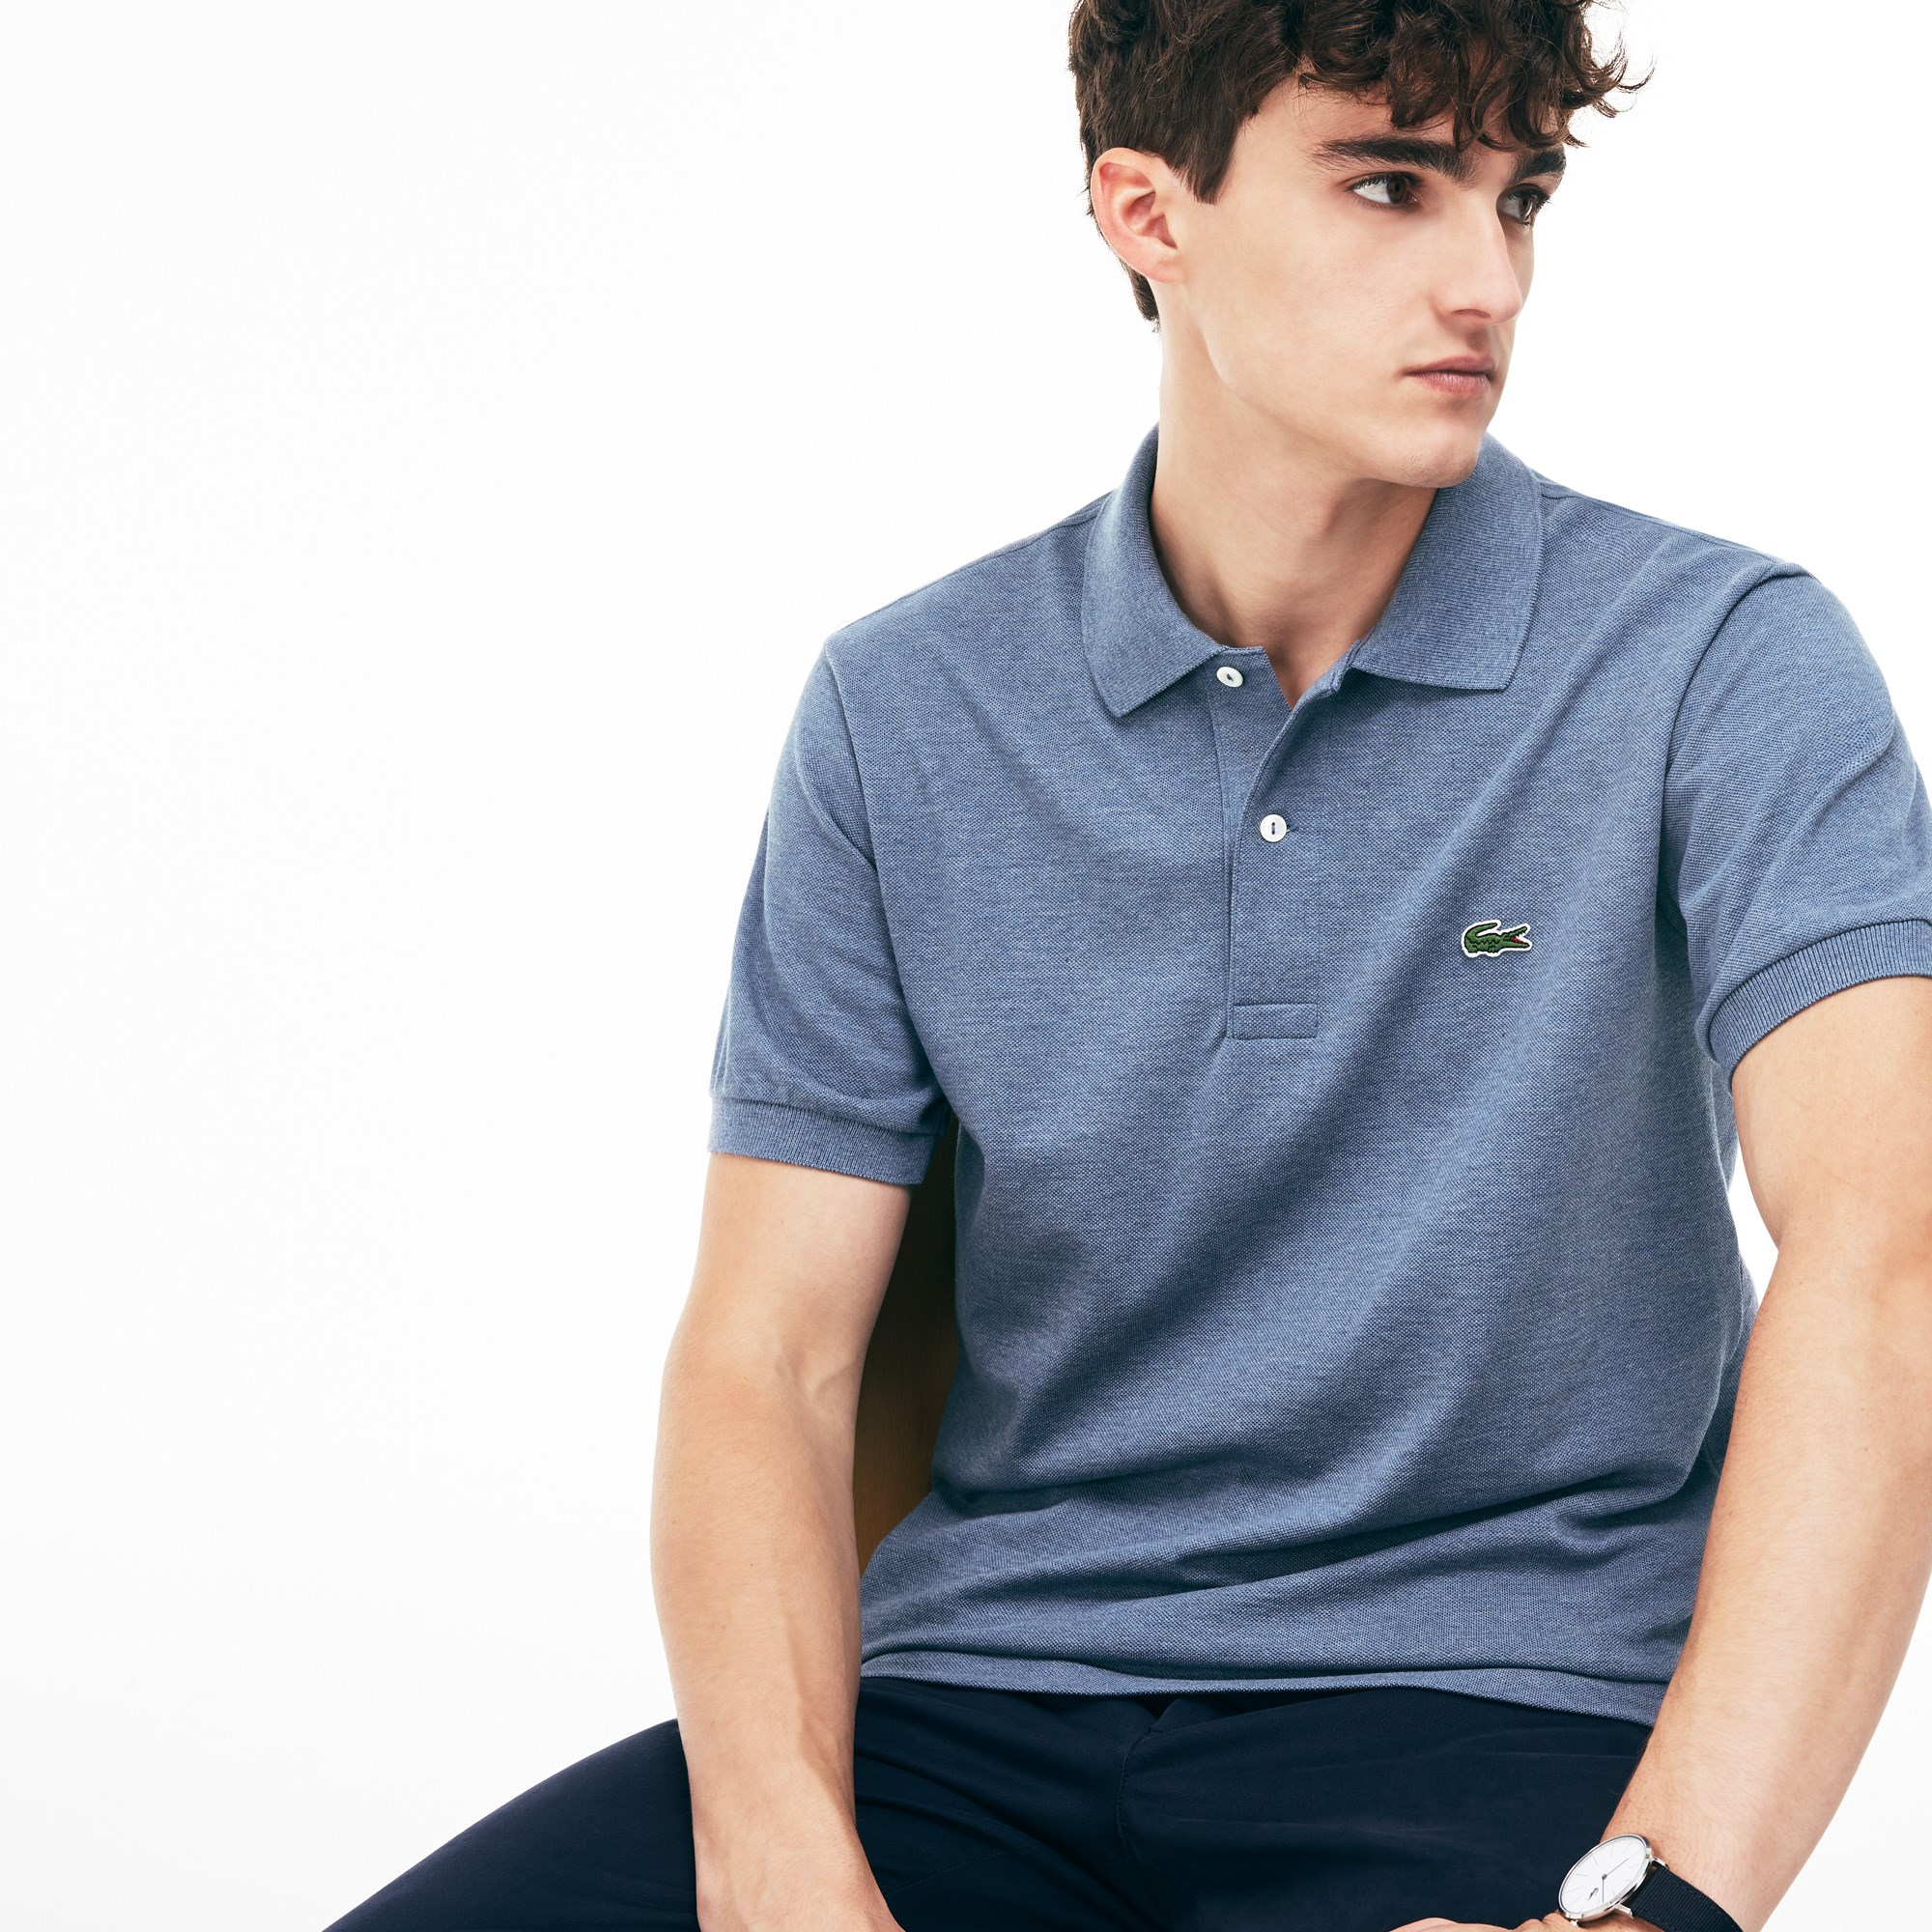 4a66878bec713 Camisas Polo Classic Fit   Moda Masculina   LACOSTE